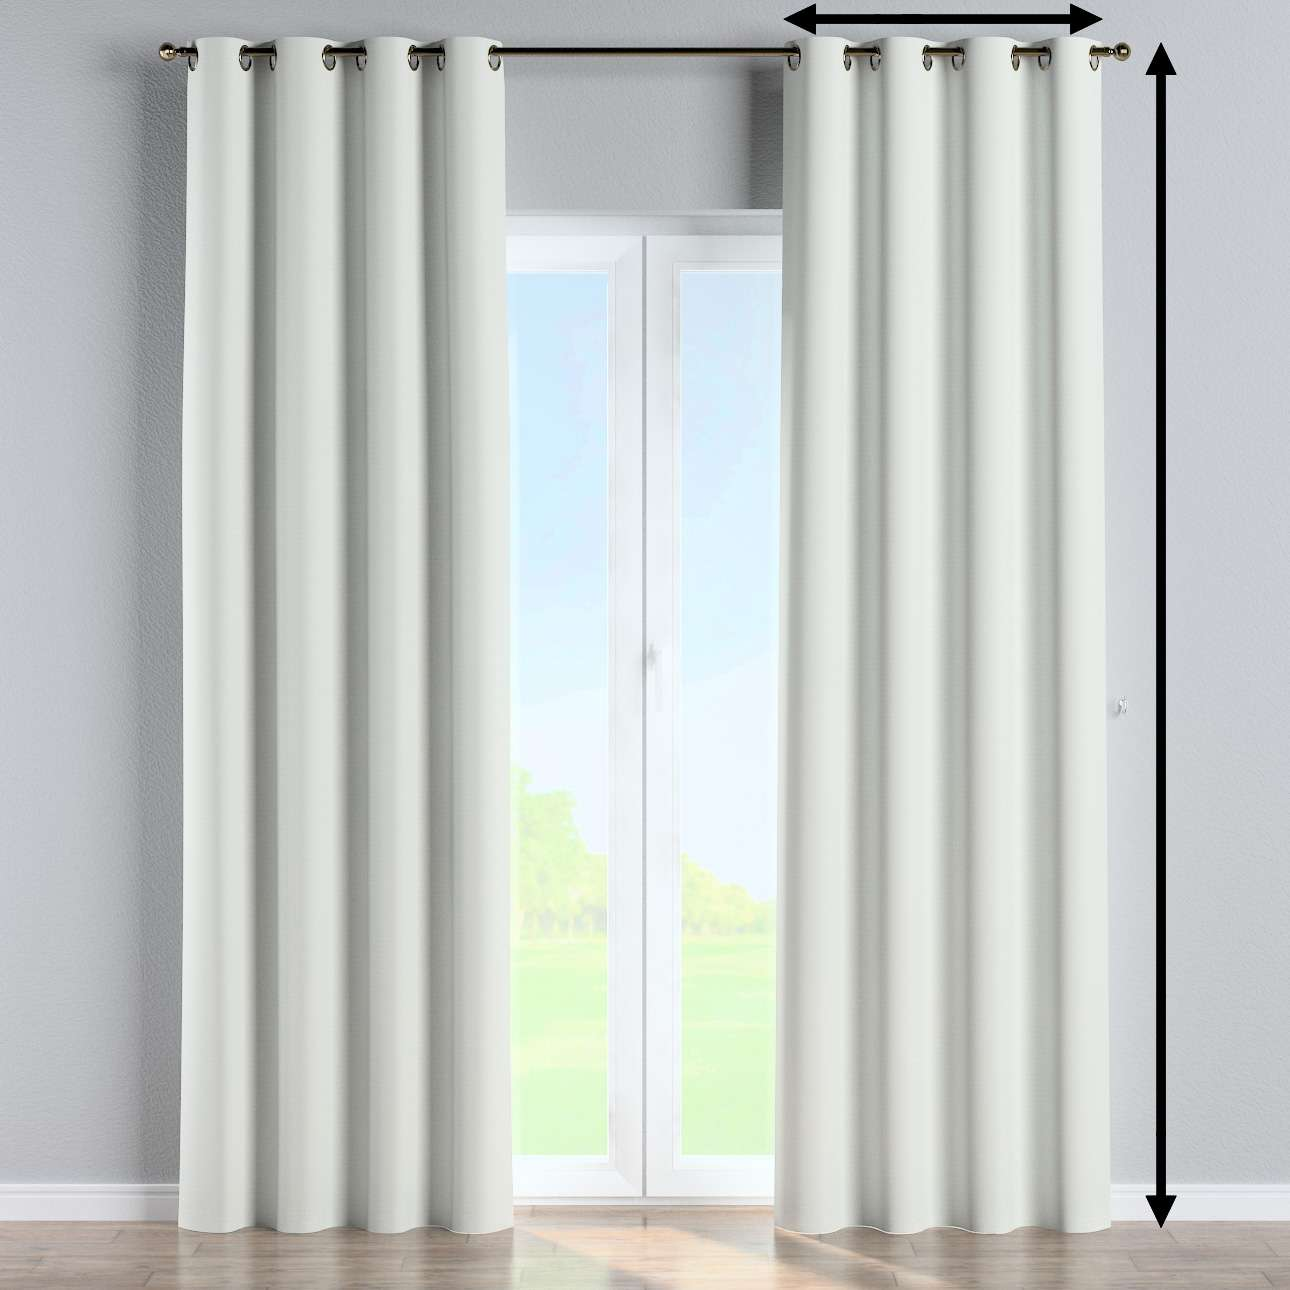 Blackout eyelet curtain in collection Blackout 280 cm, fabric: 269-10